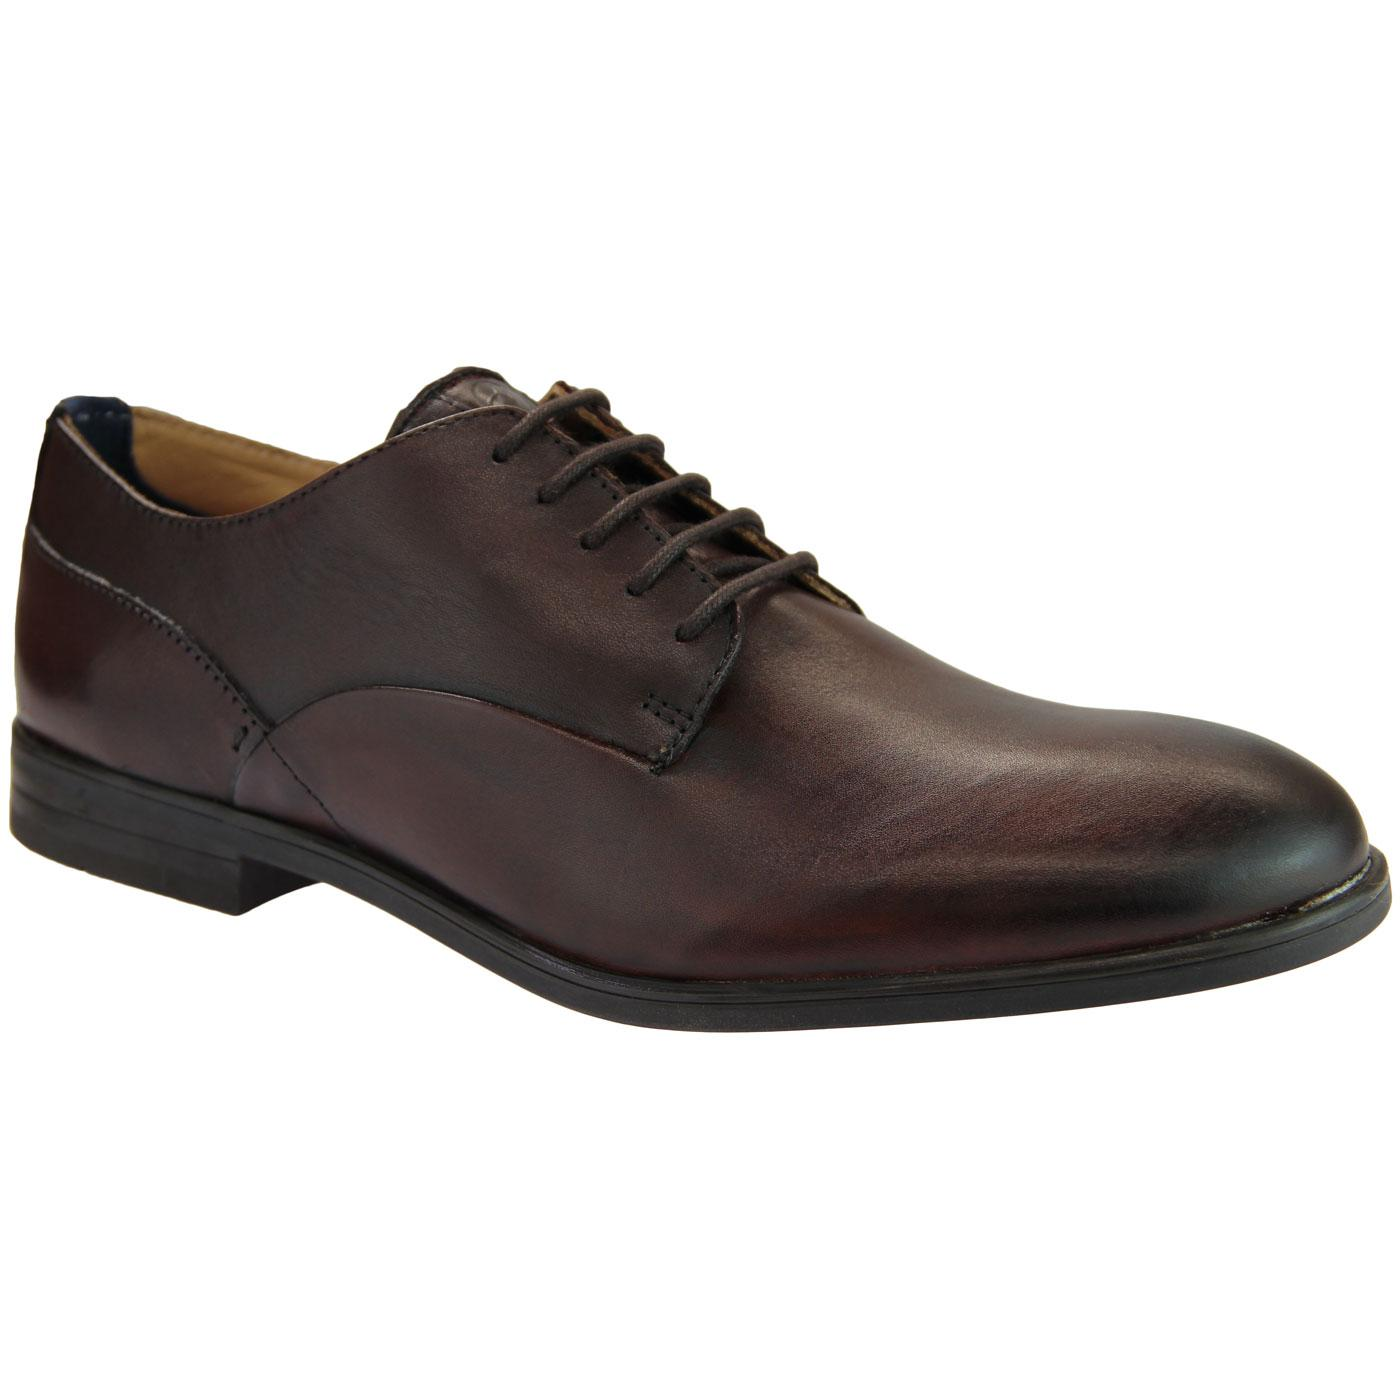 Axminster HUDSON 60s Mod Leather Derby Shoes BROWN